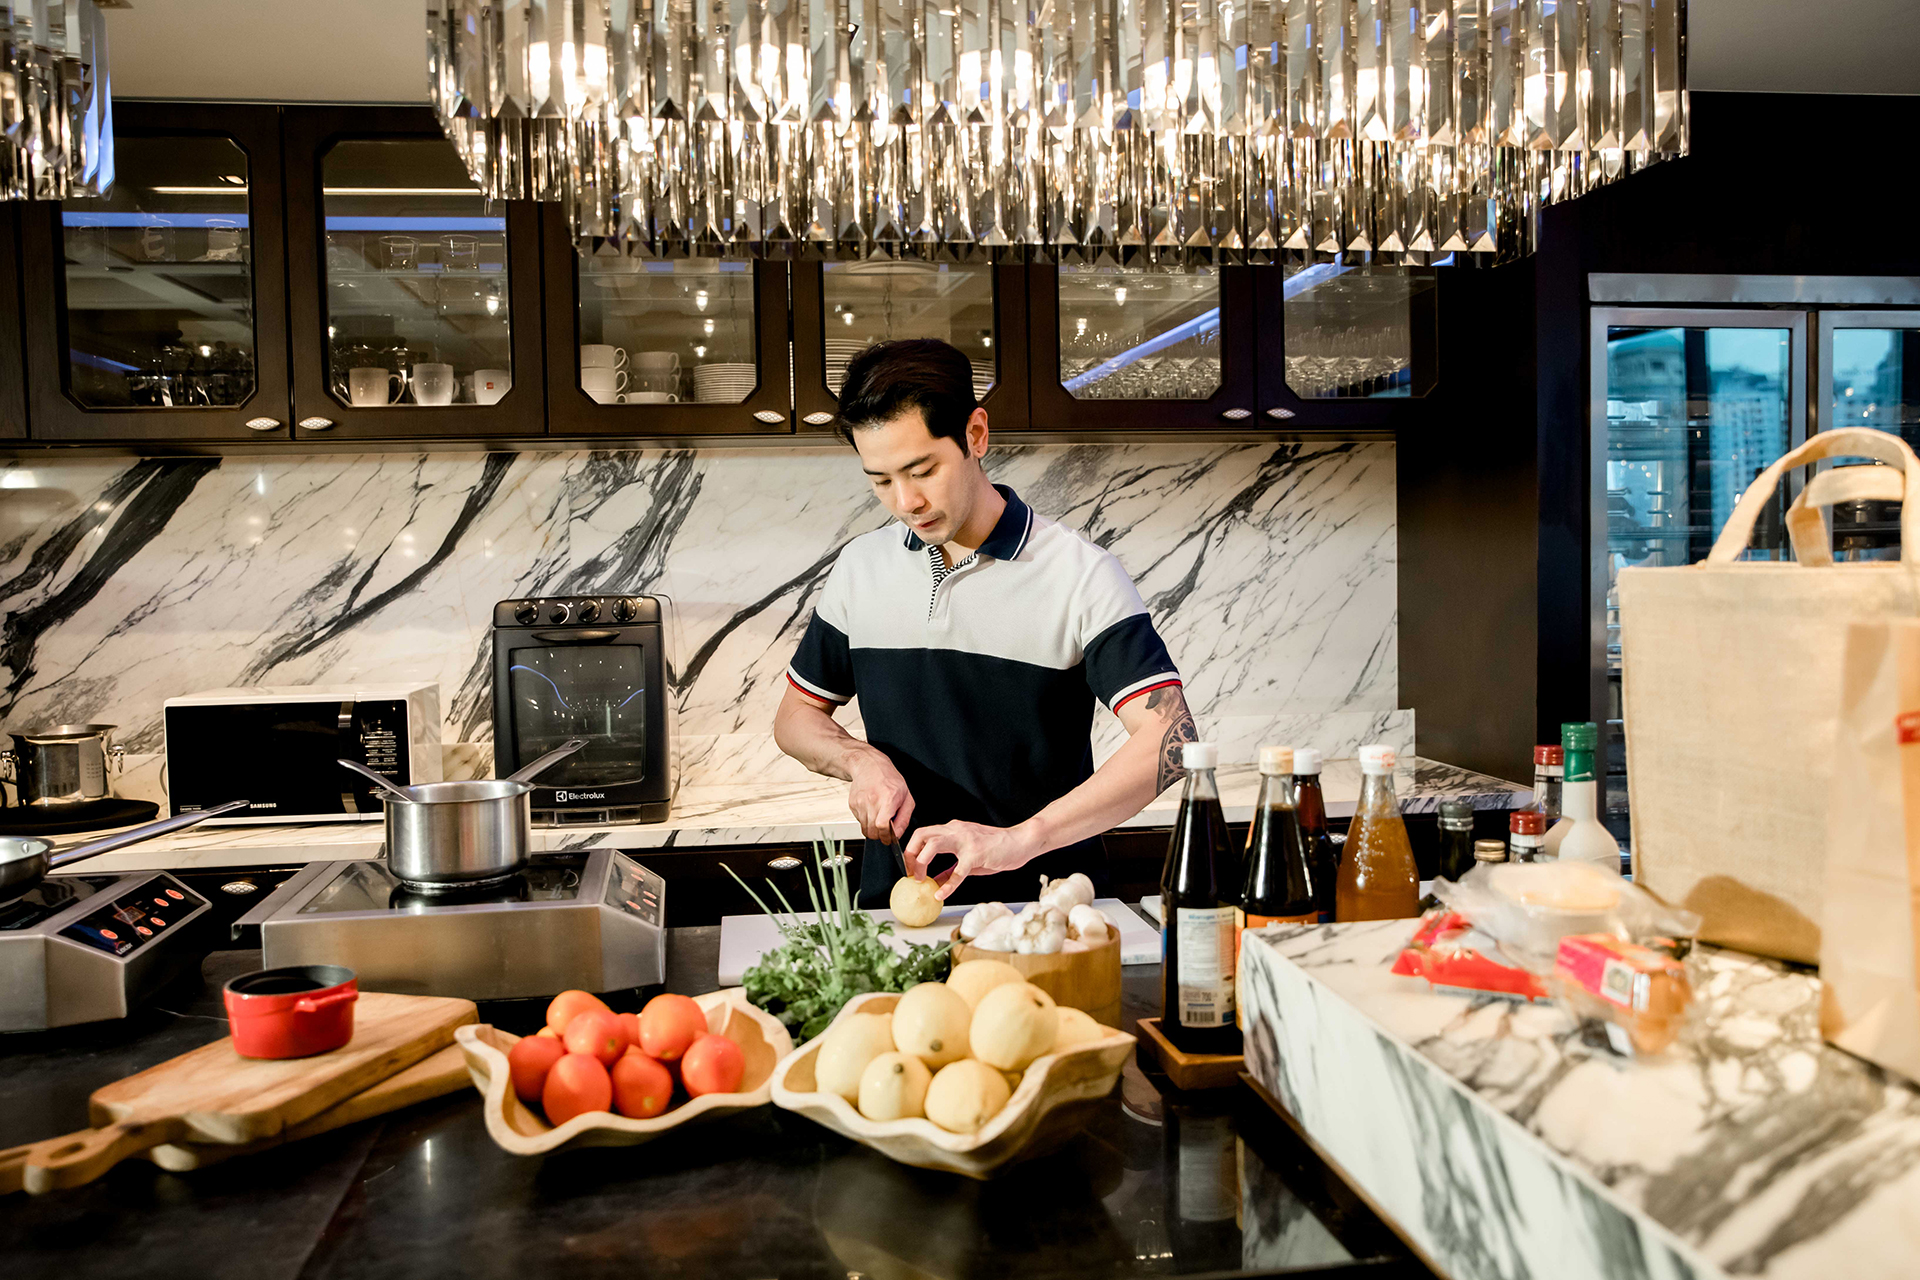 The Athenee Hotel New Offer Residents Kitchen